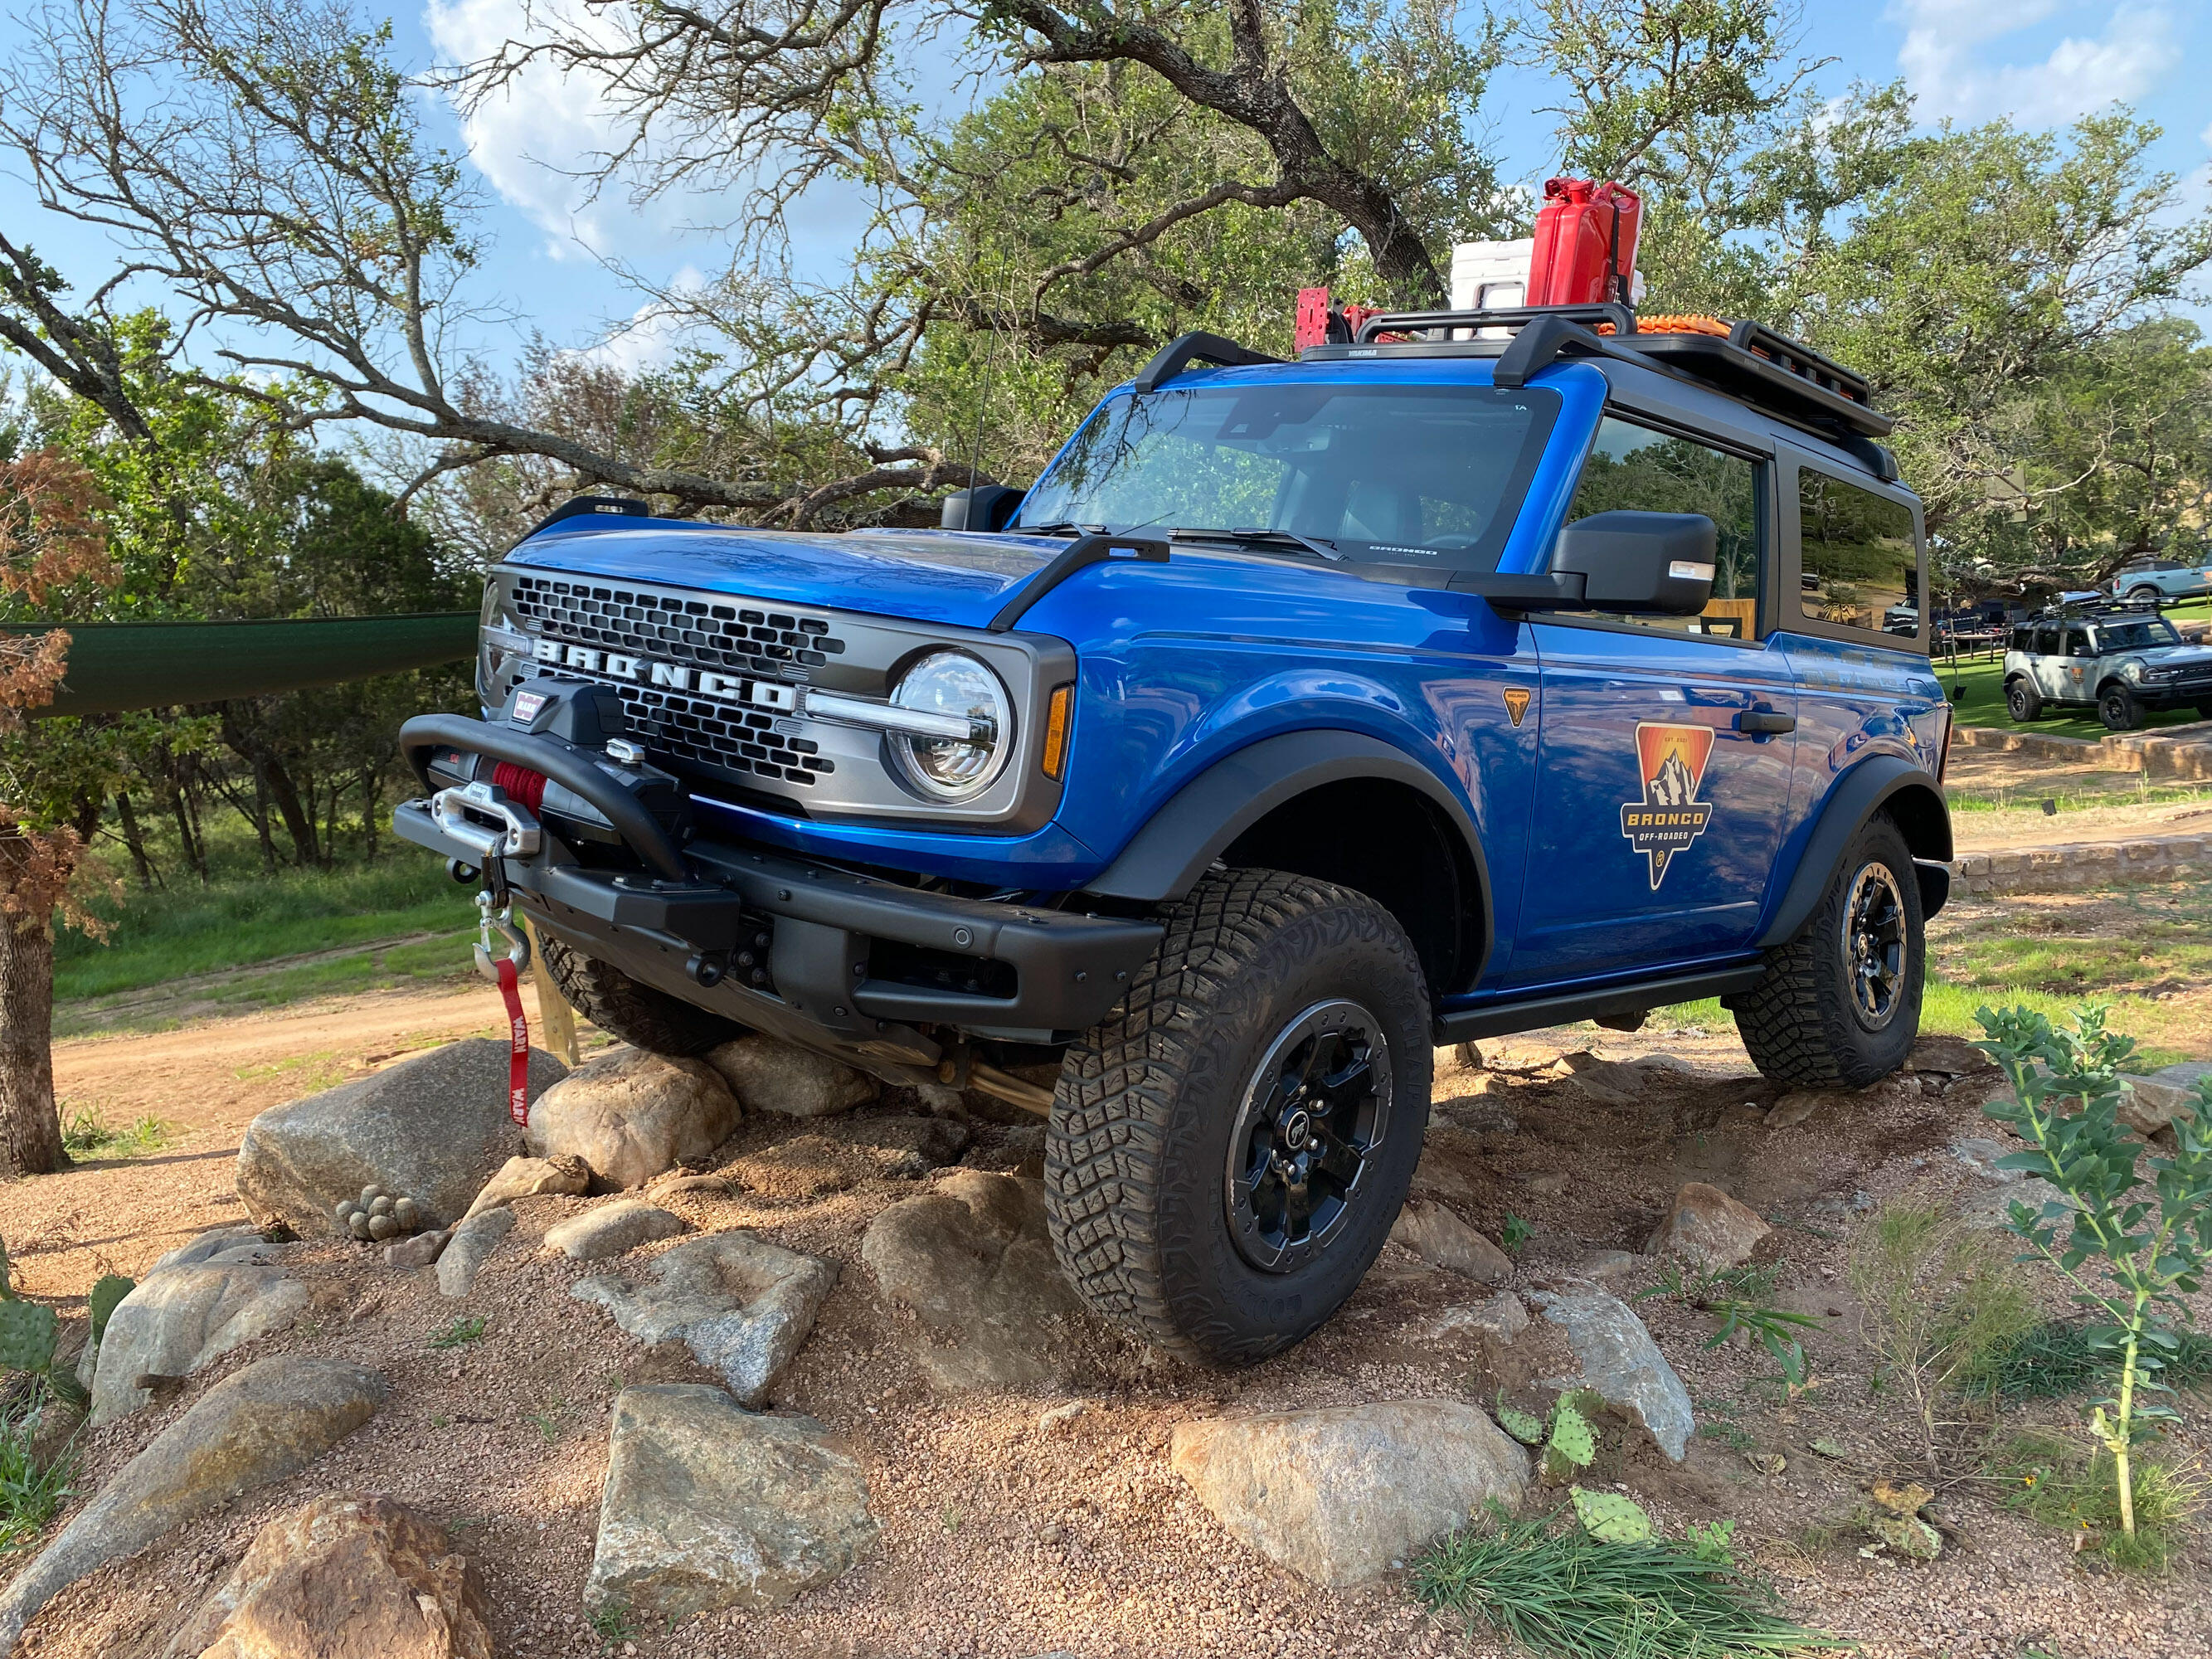 2021 Ford Bronco - Blue accessorized two-door Sasquatch model